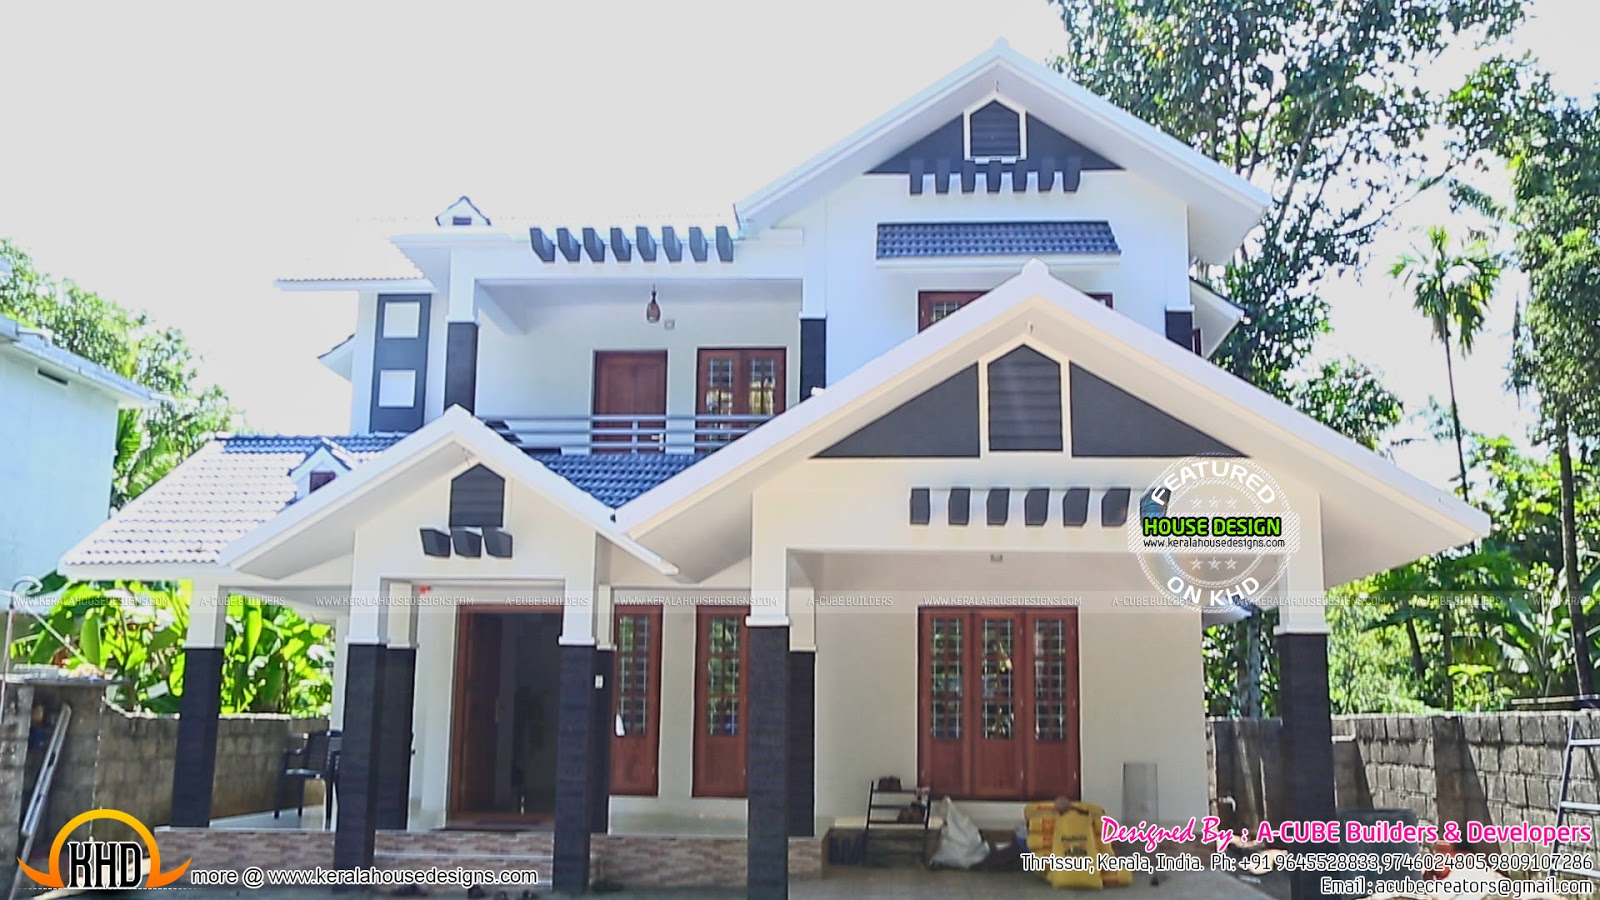 New house plans for 2016 starts here kerala home design for House plans with photos in kerala style